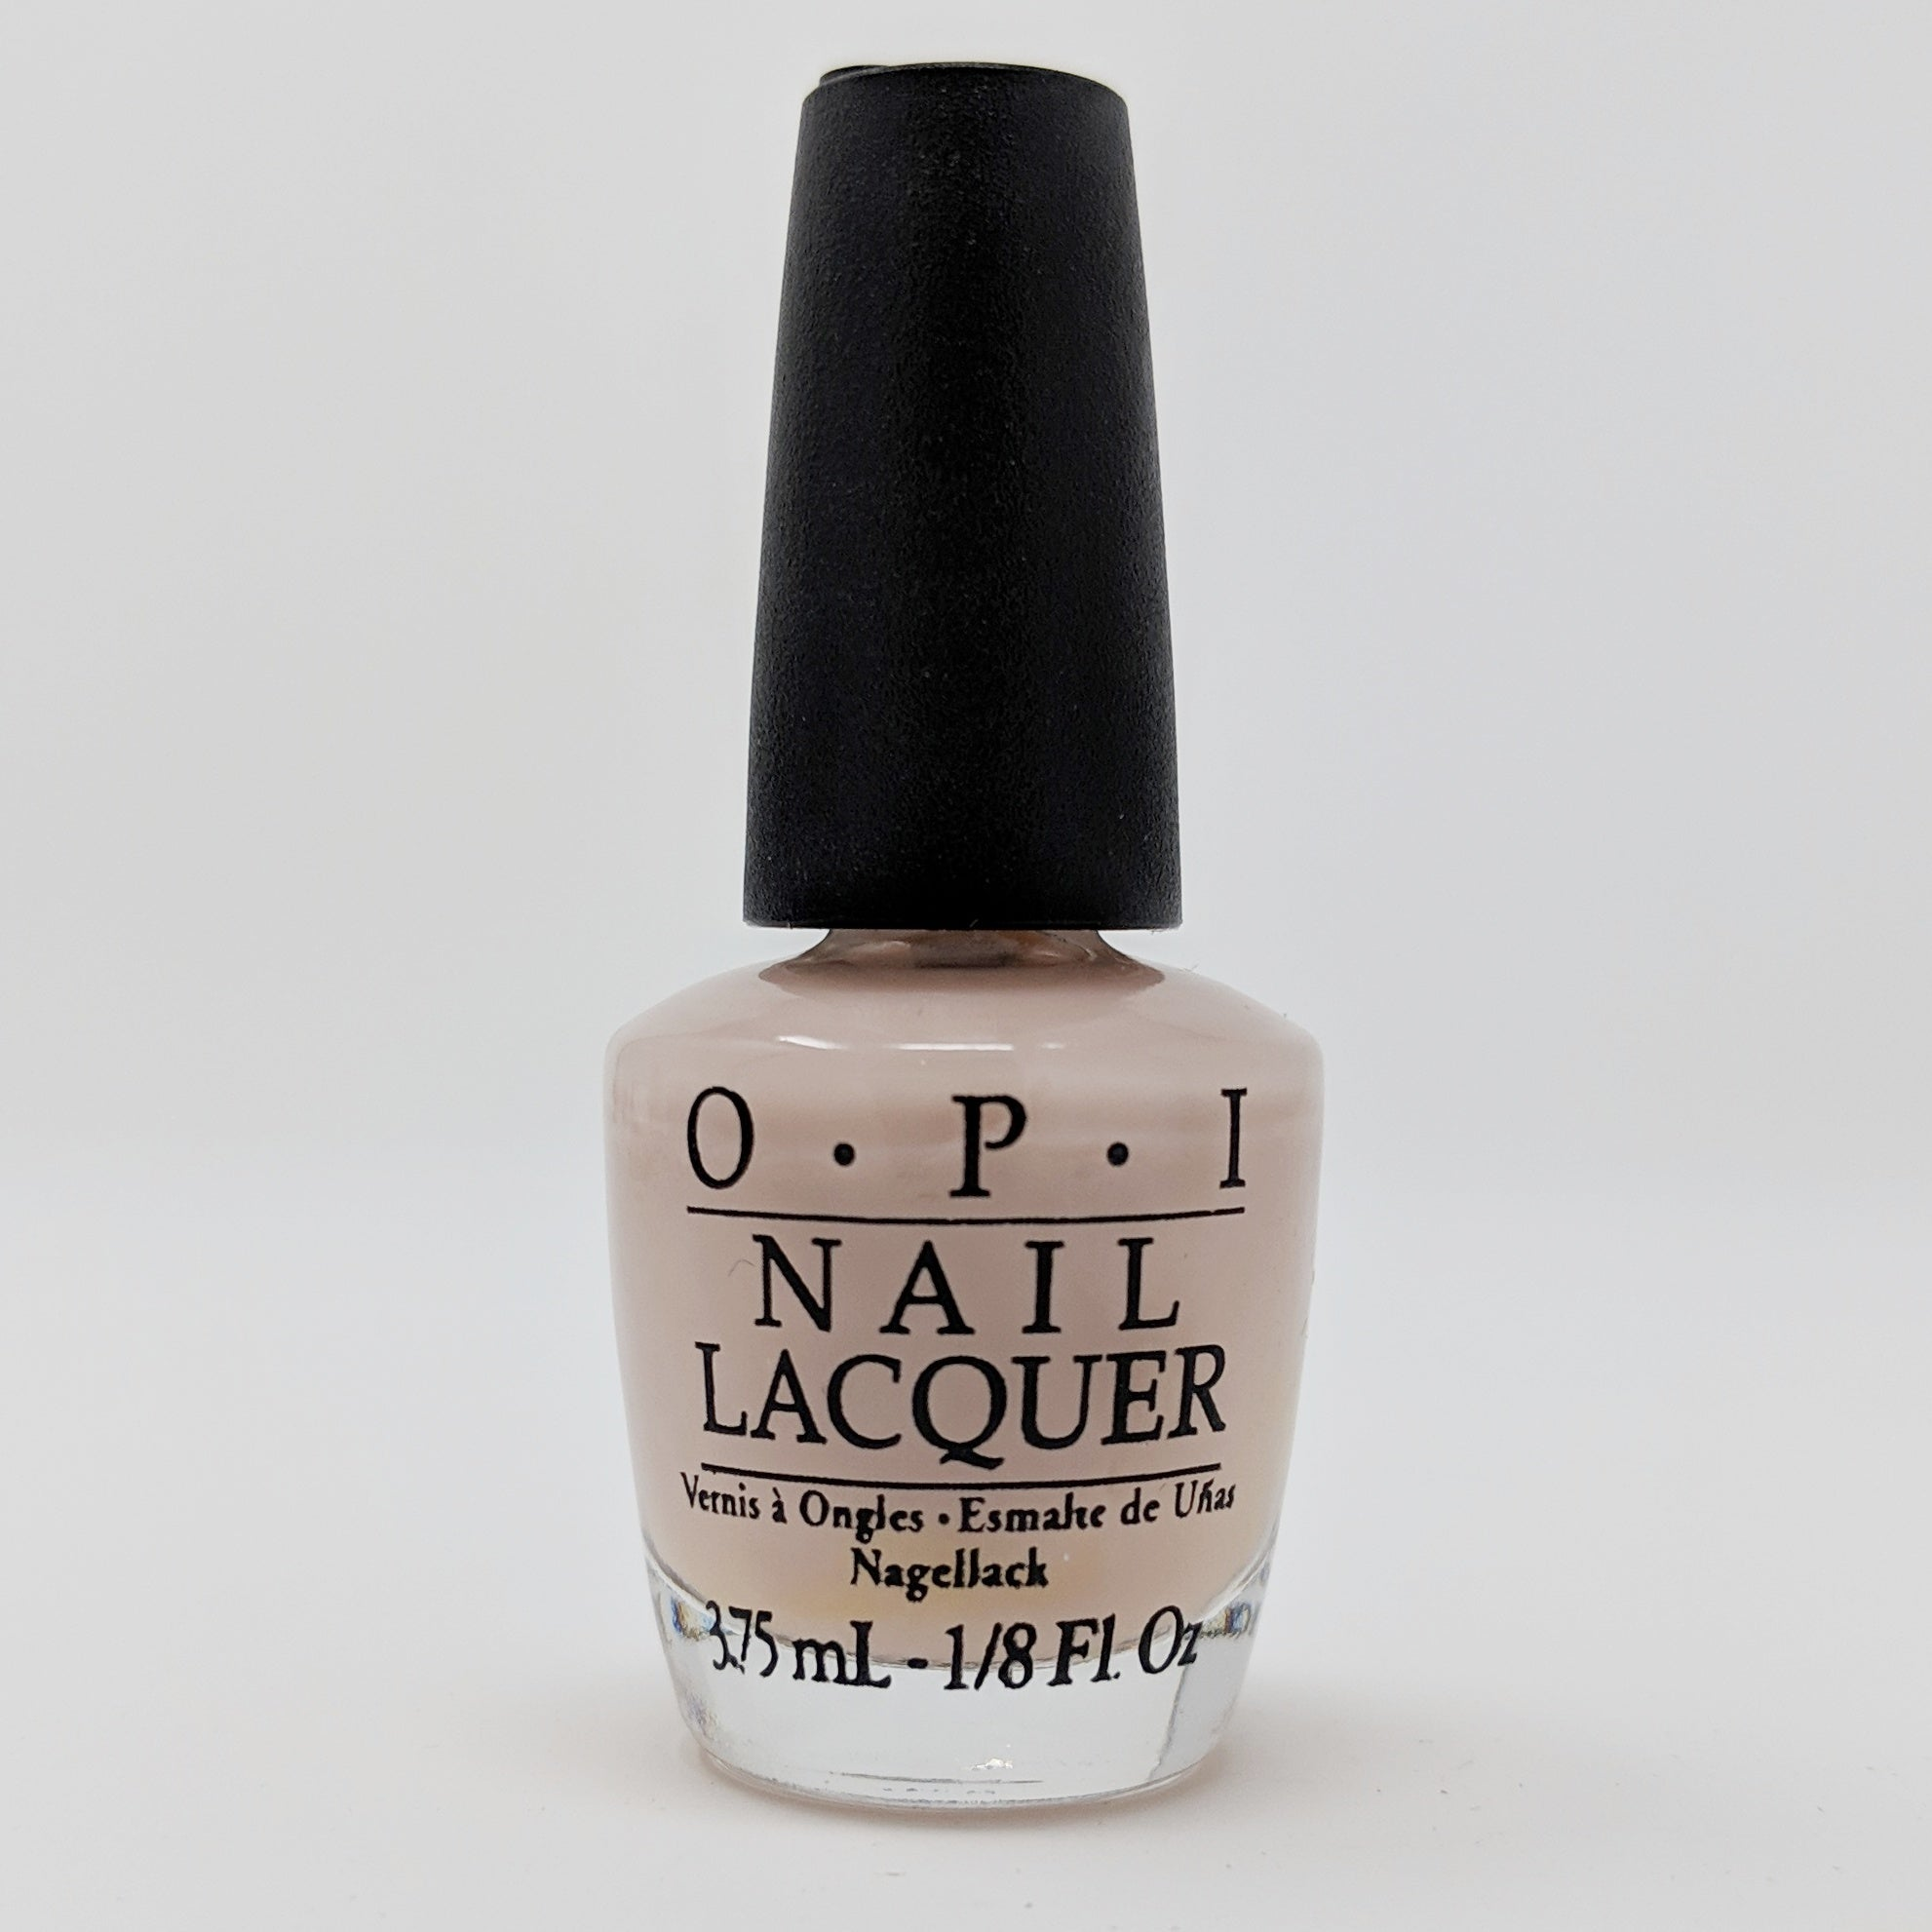 Bubble Bath-OPI-UK-Wholesaler-Supplier-queenofnailscouk